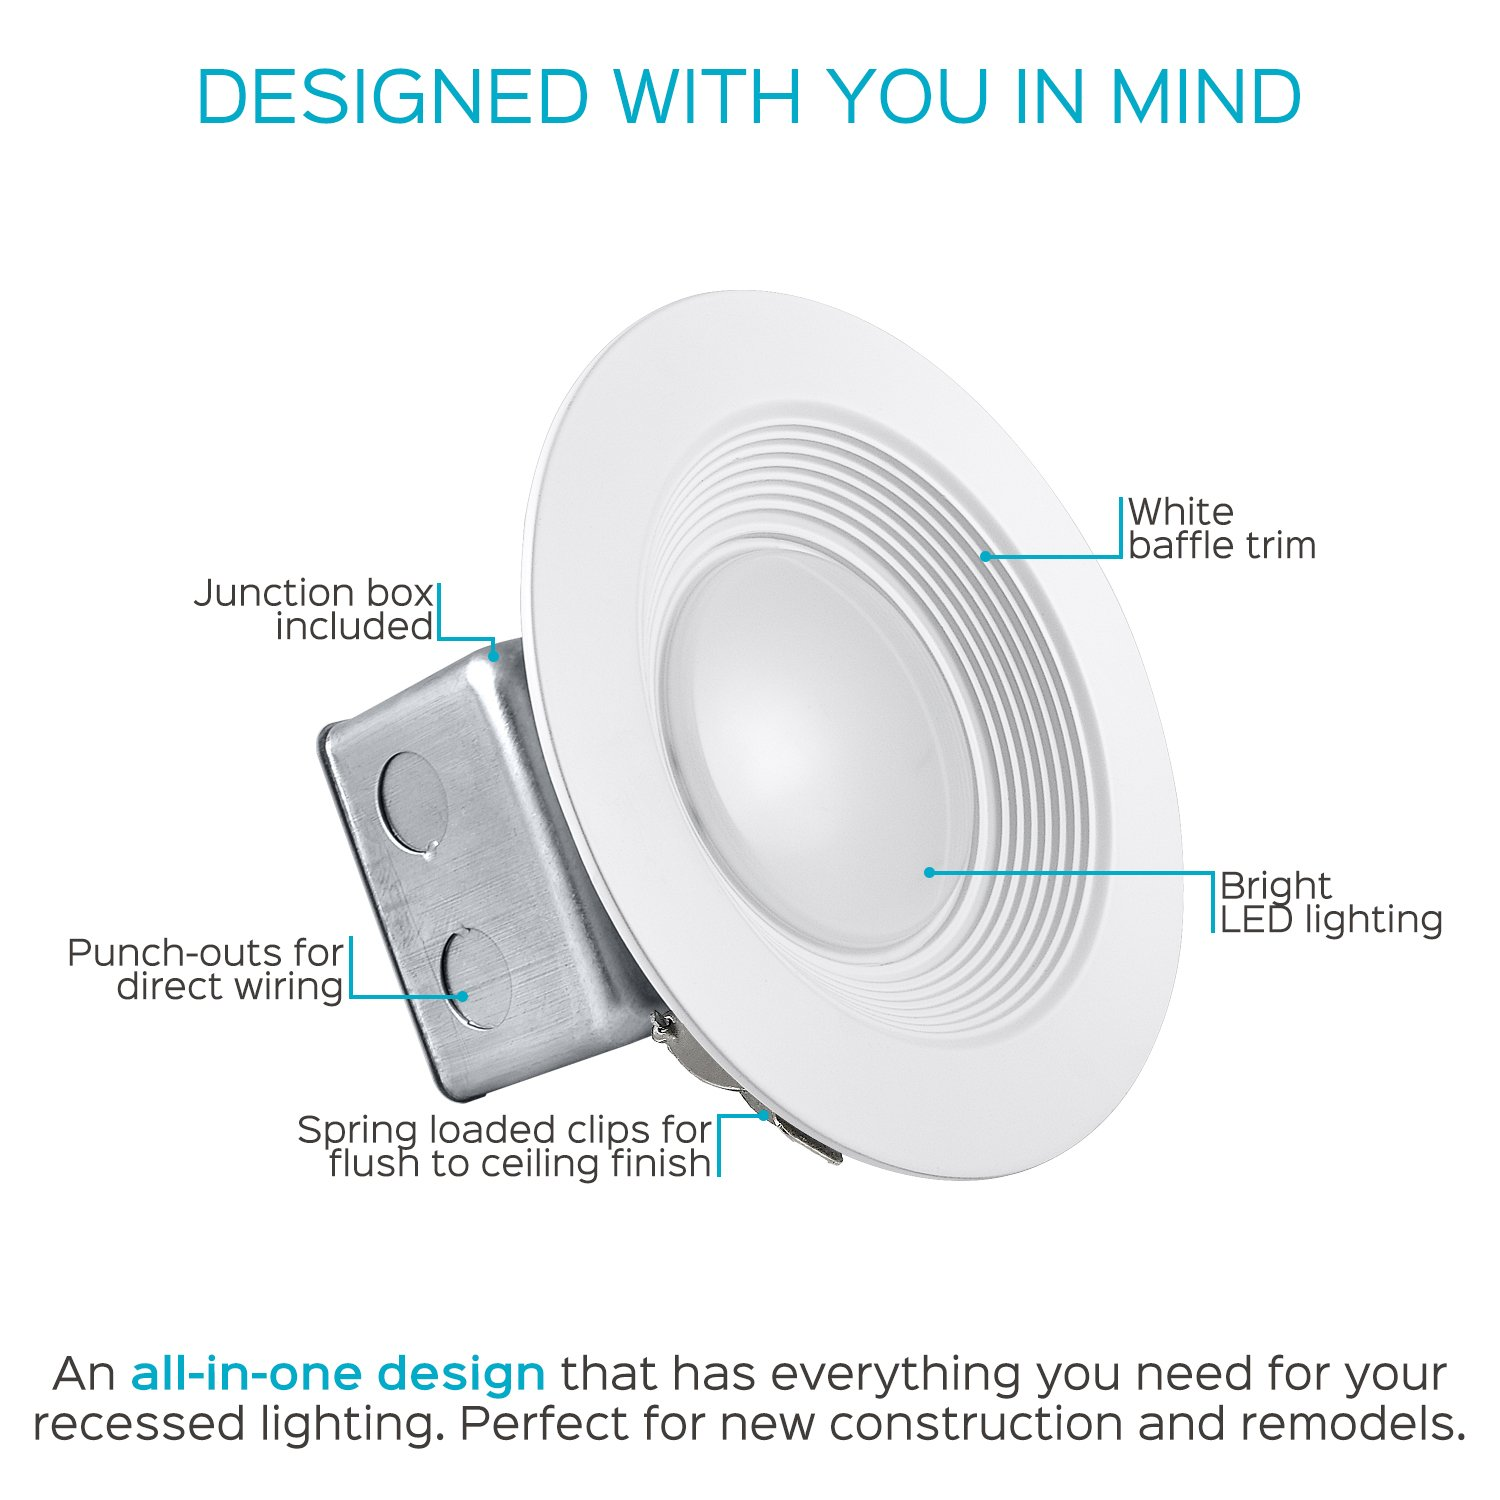 Luxrite 5/6 Inch LED Recessed Light with Junction Box, 15W, 5000K Bright White, Dimmable Airtight Downlight, 1100 Lumens, Energy Star, IC & Wet Rated, 120V - 277V, Recessed Lighting Kit (12 Pack) by LUXRITE (Image #4)